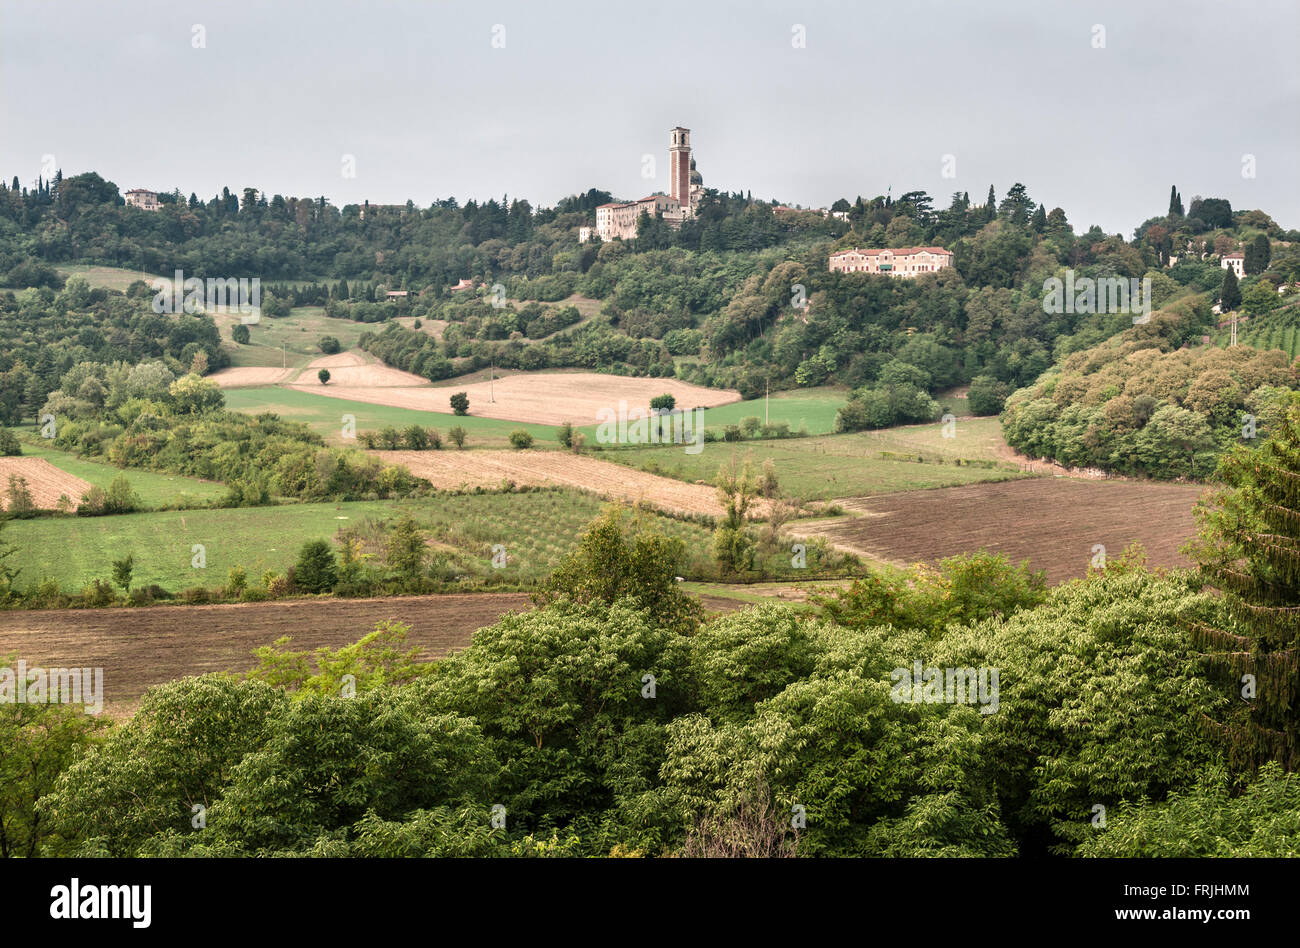 Near Vicenza, Italy. The Basilica of Monte Berico seen from the valley below - Stock Image